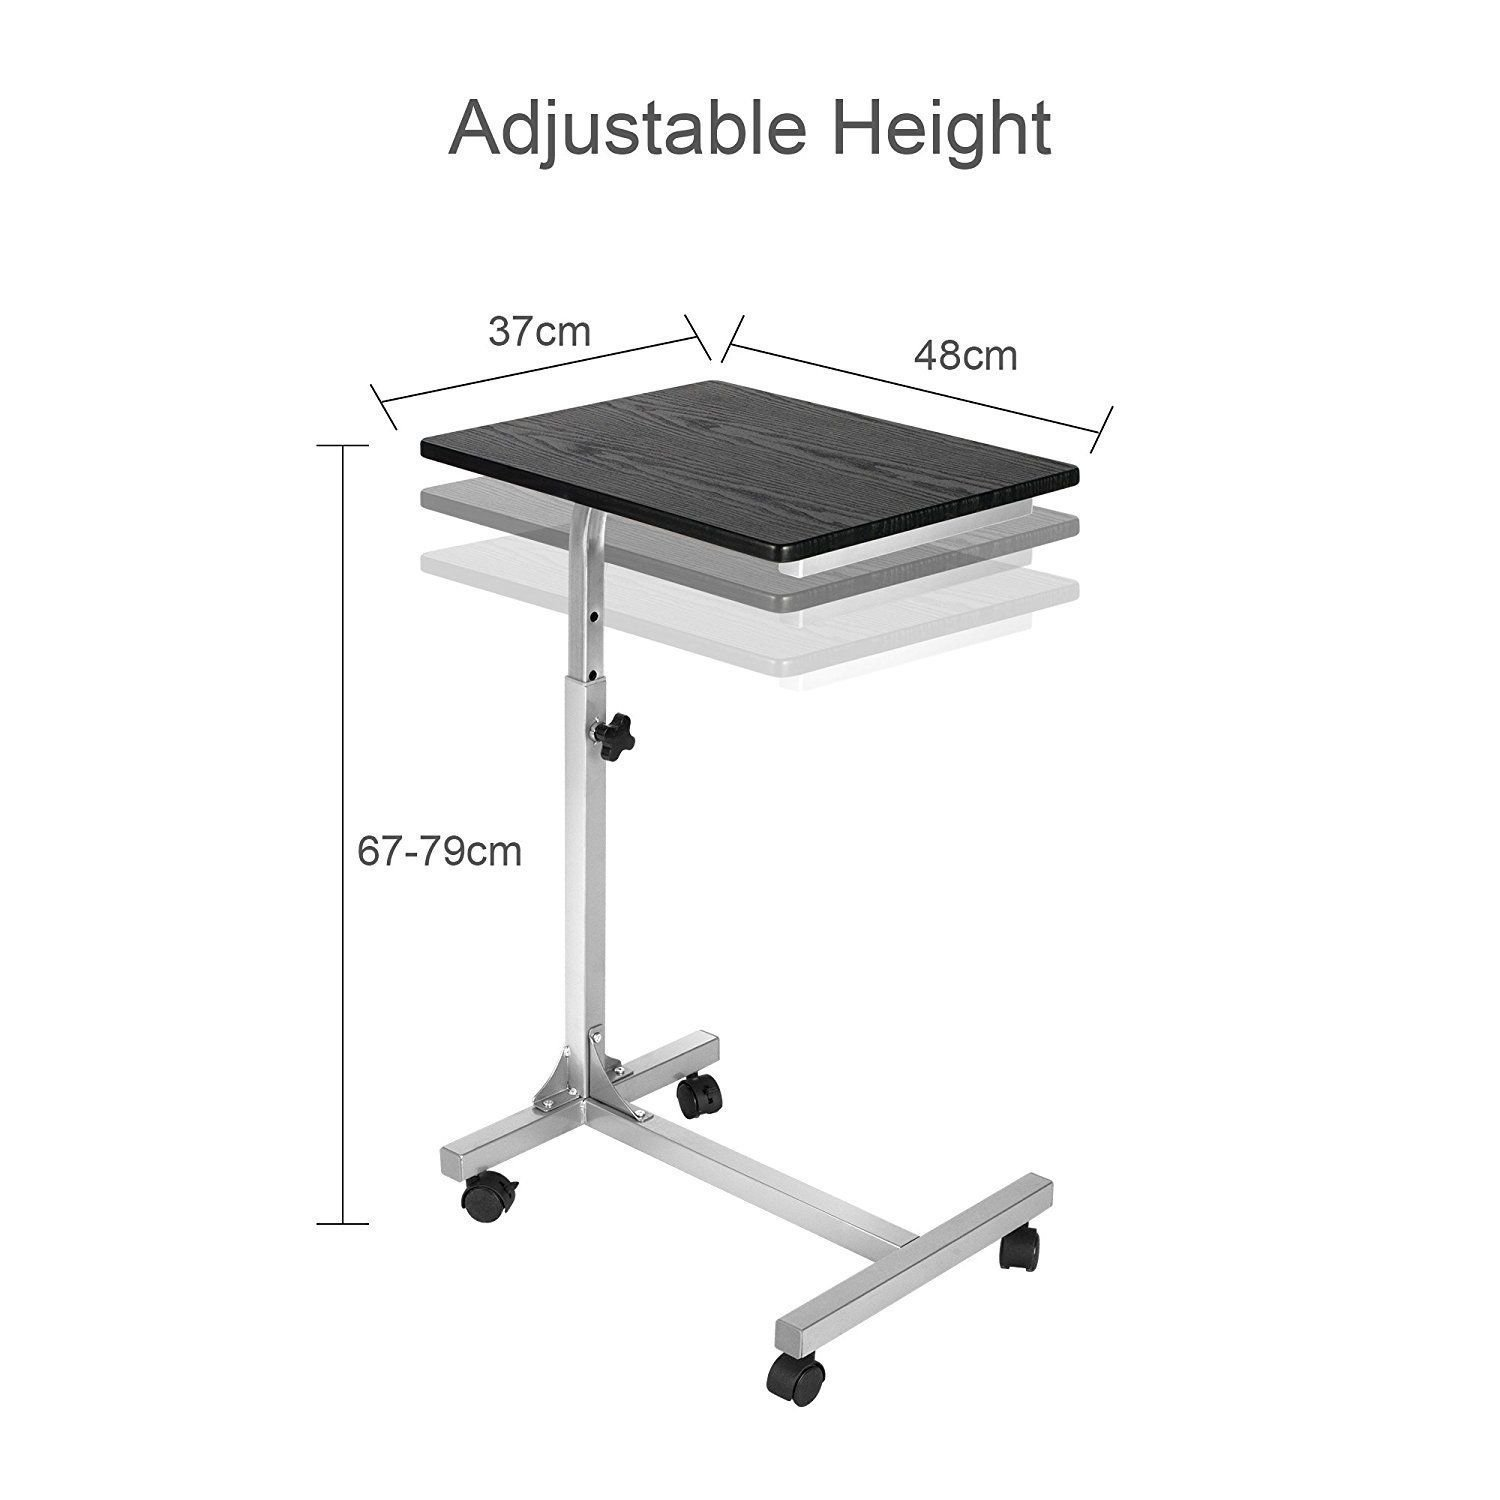 Generic Table Black Bed Table able Bl Adjustable Sofa ed Tabl laptop Stand Lapdesks able Black apdesks Portab Portable Height